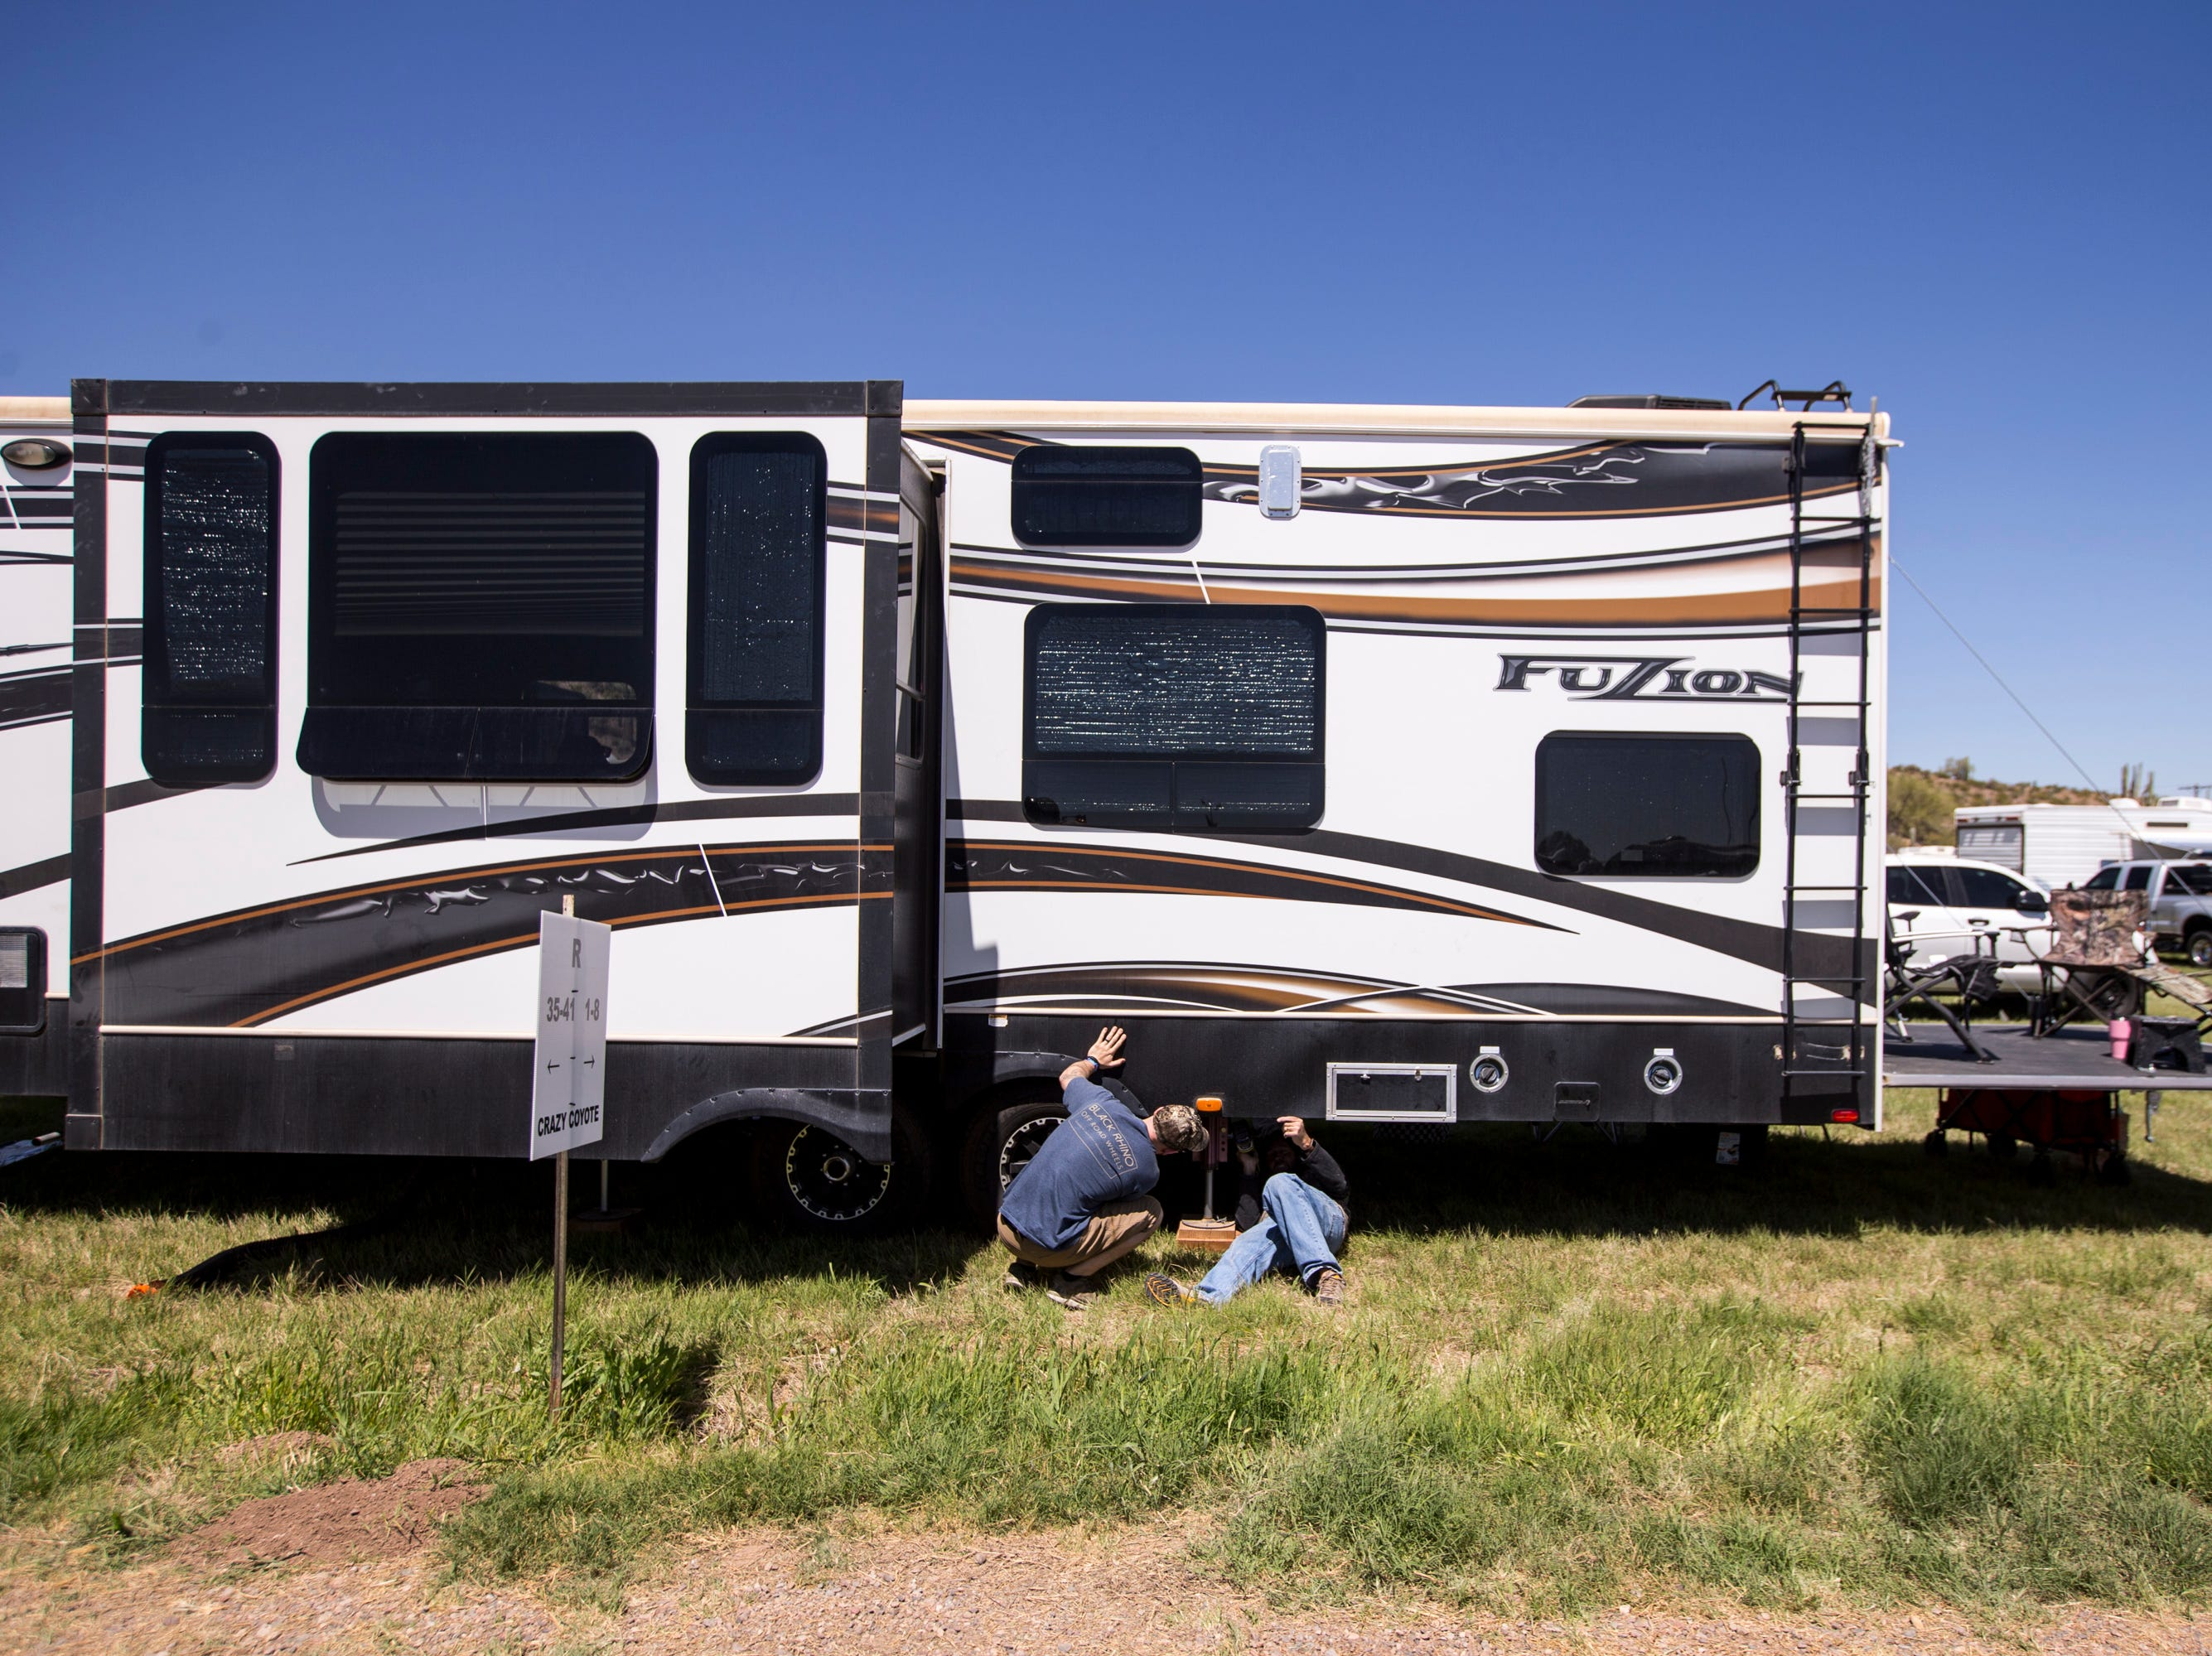 Mike Sonnenberg (left) and Kevin Blake work on their RV's electrical and drainage systems on April 11, 2019, during Day 1 of Country Thunder Arizona in Florence.